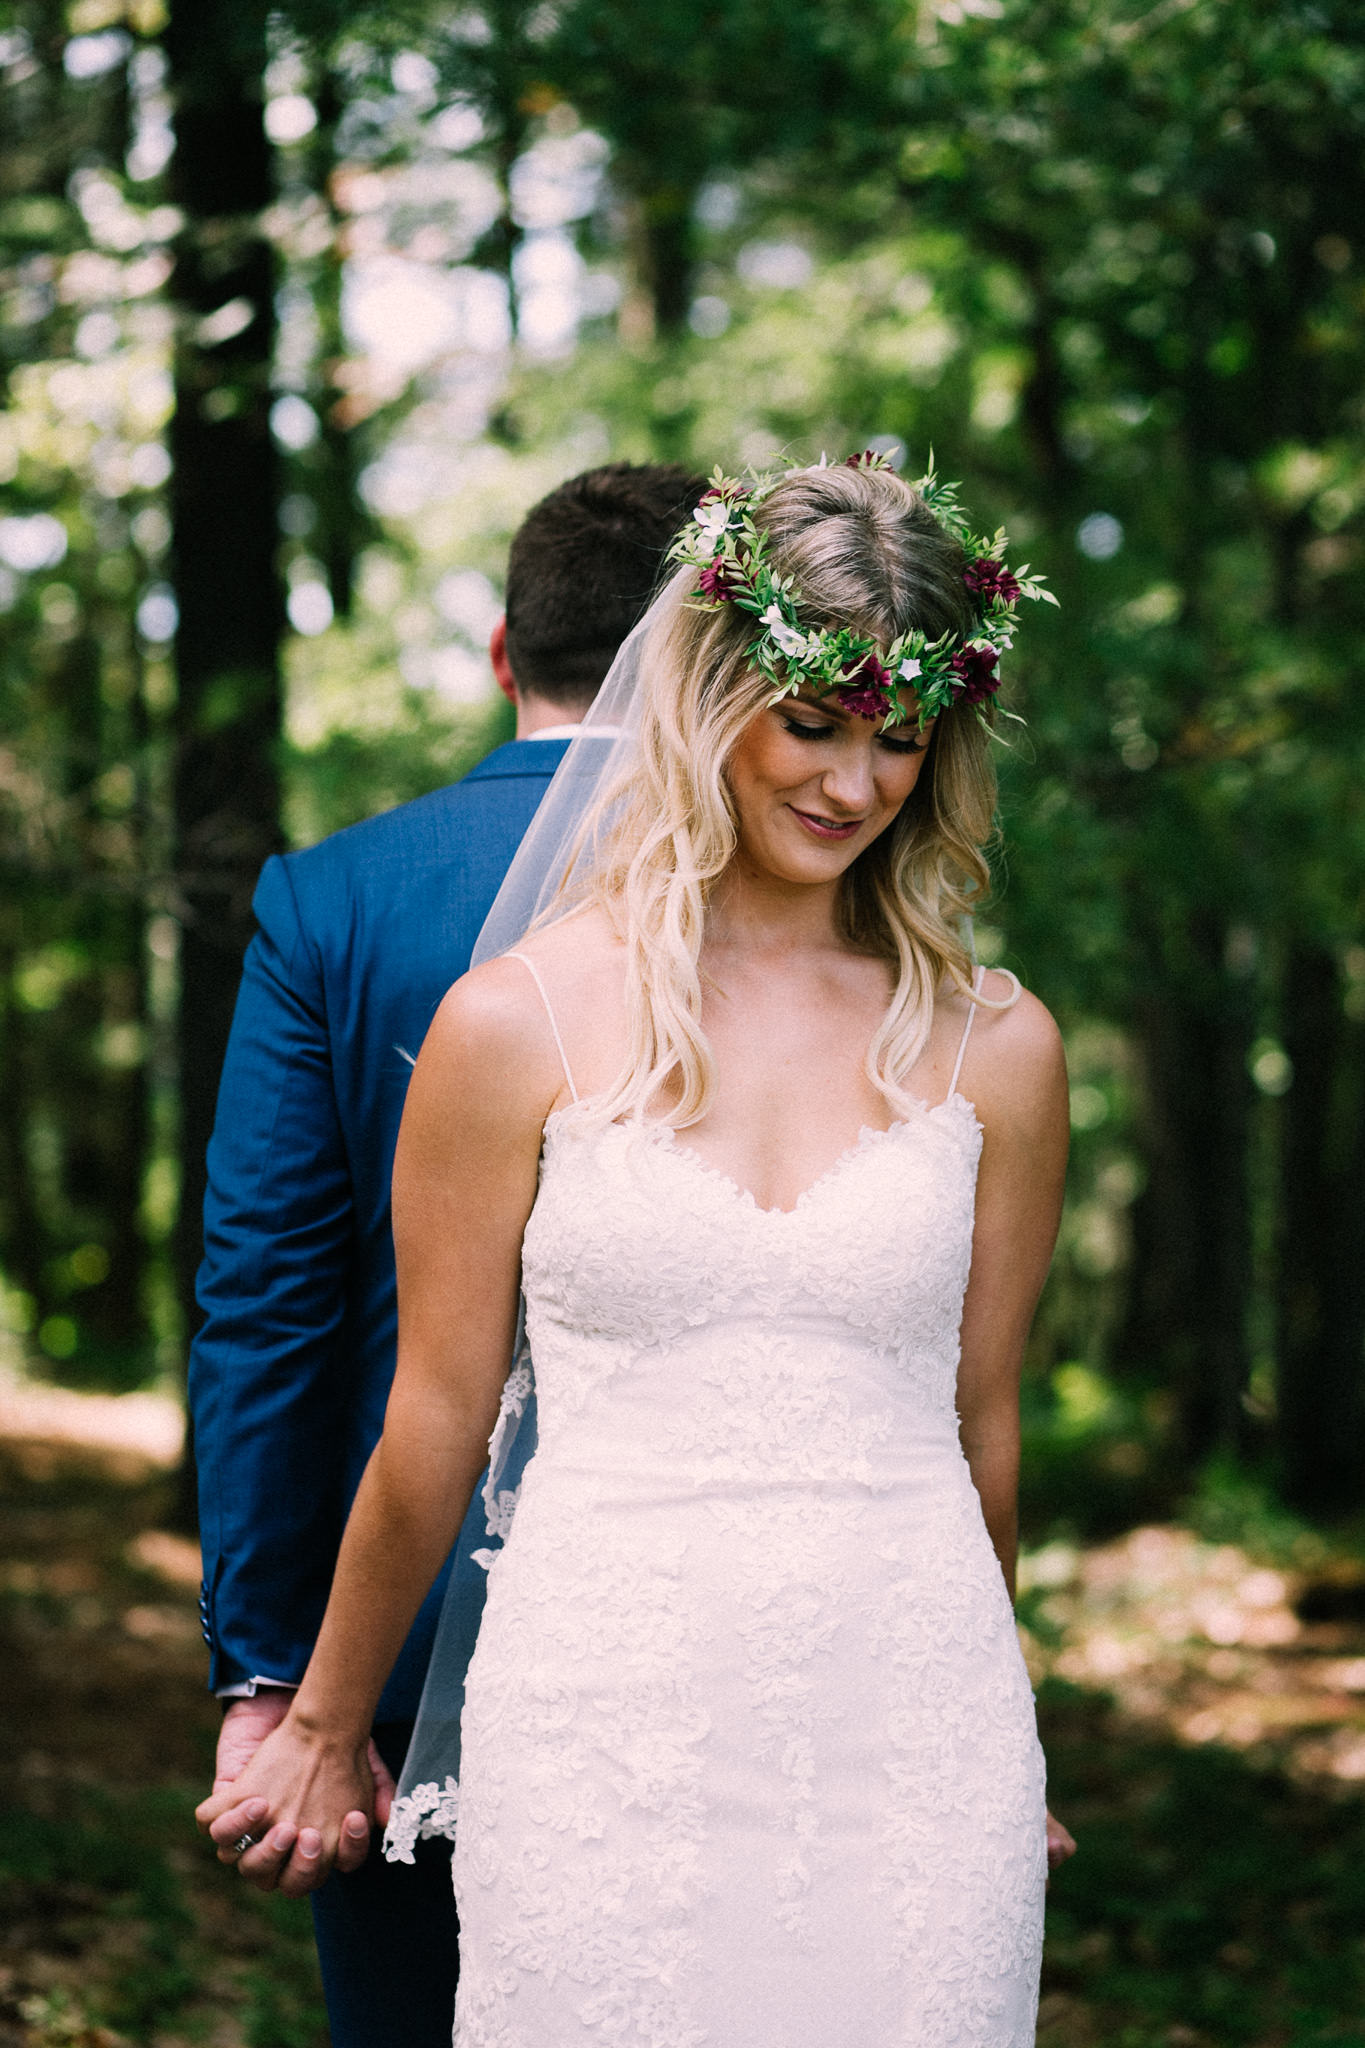 Muskoka lakeside wedding at Port Cunnington Lodge by Max Wong Photo (12)